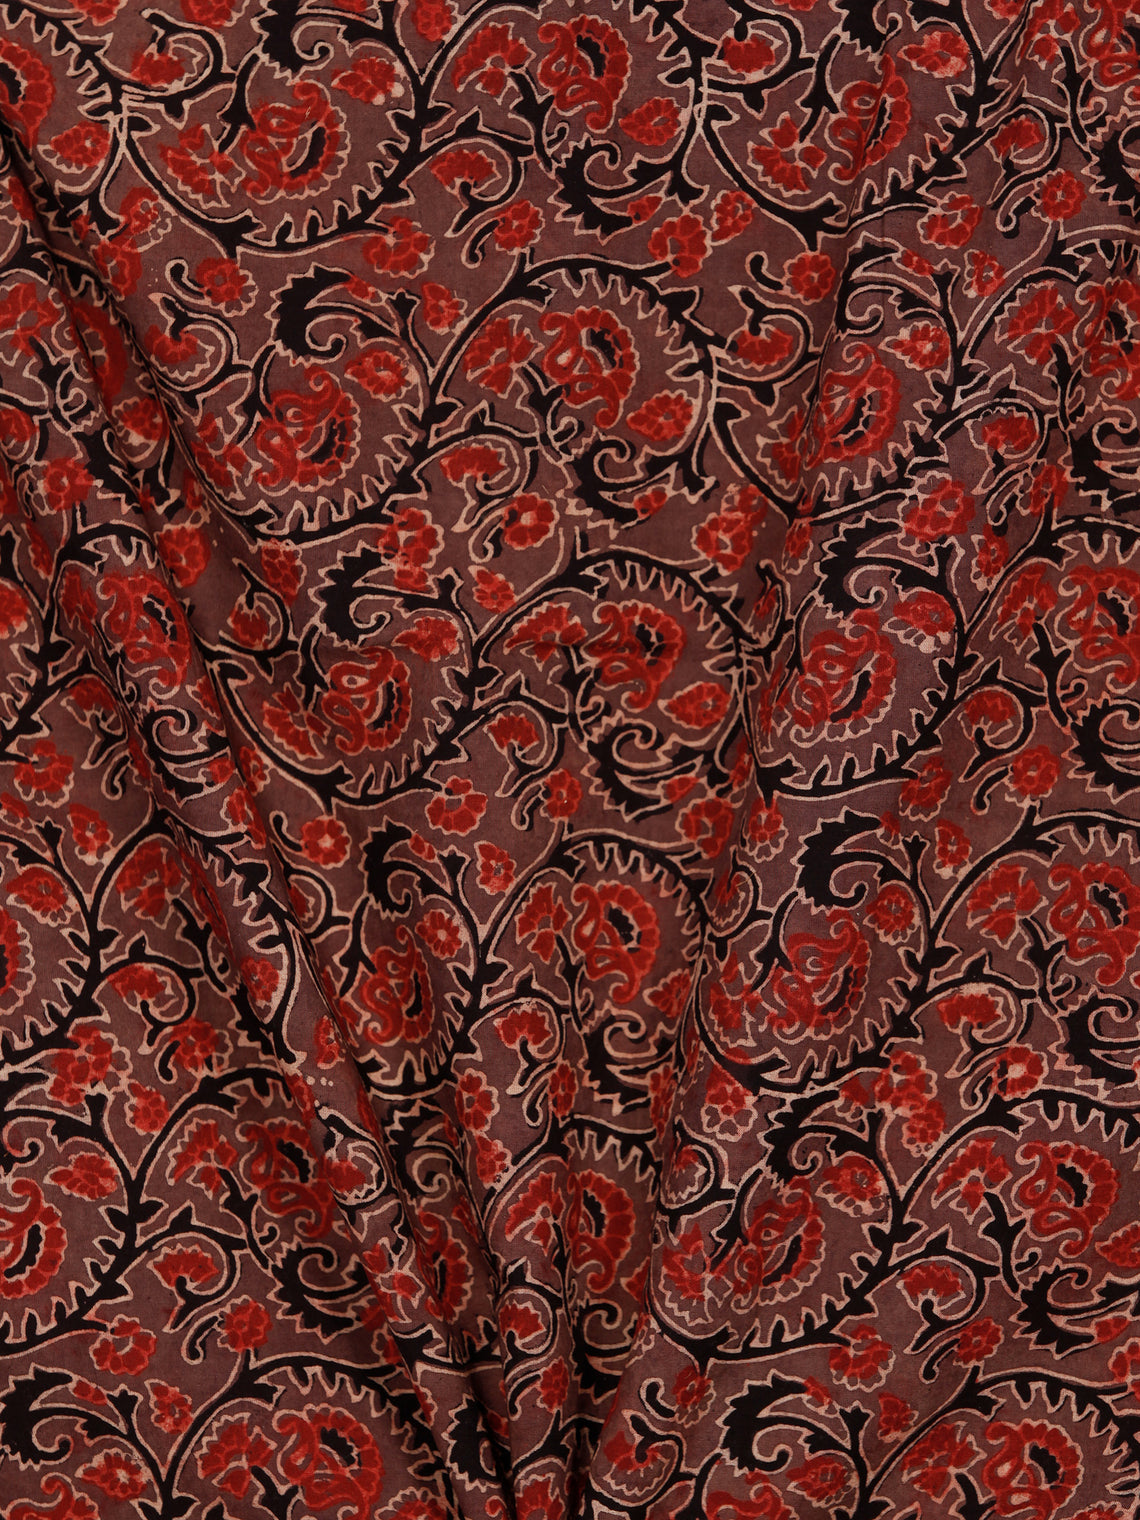 Brown Maroon Black Ajrakh Block Printed Cotton Fabric Per Meter - F003F1756